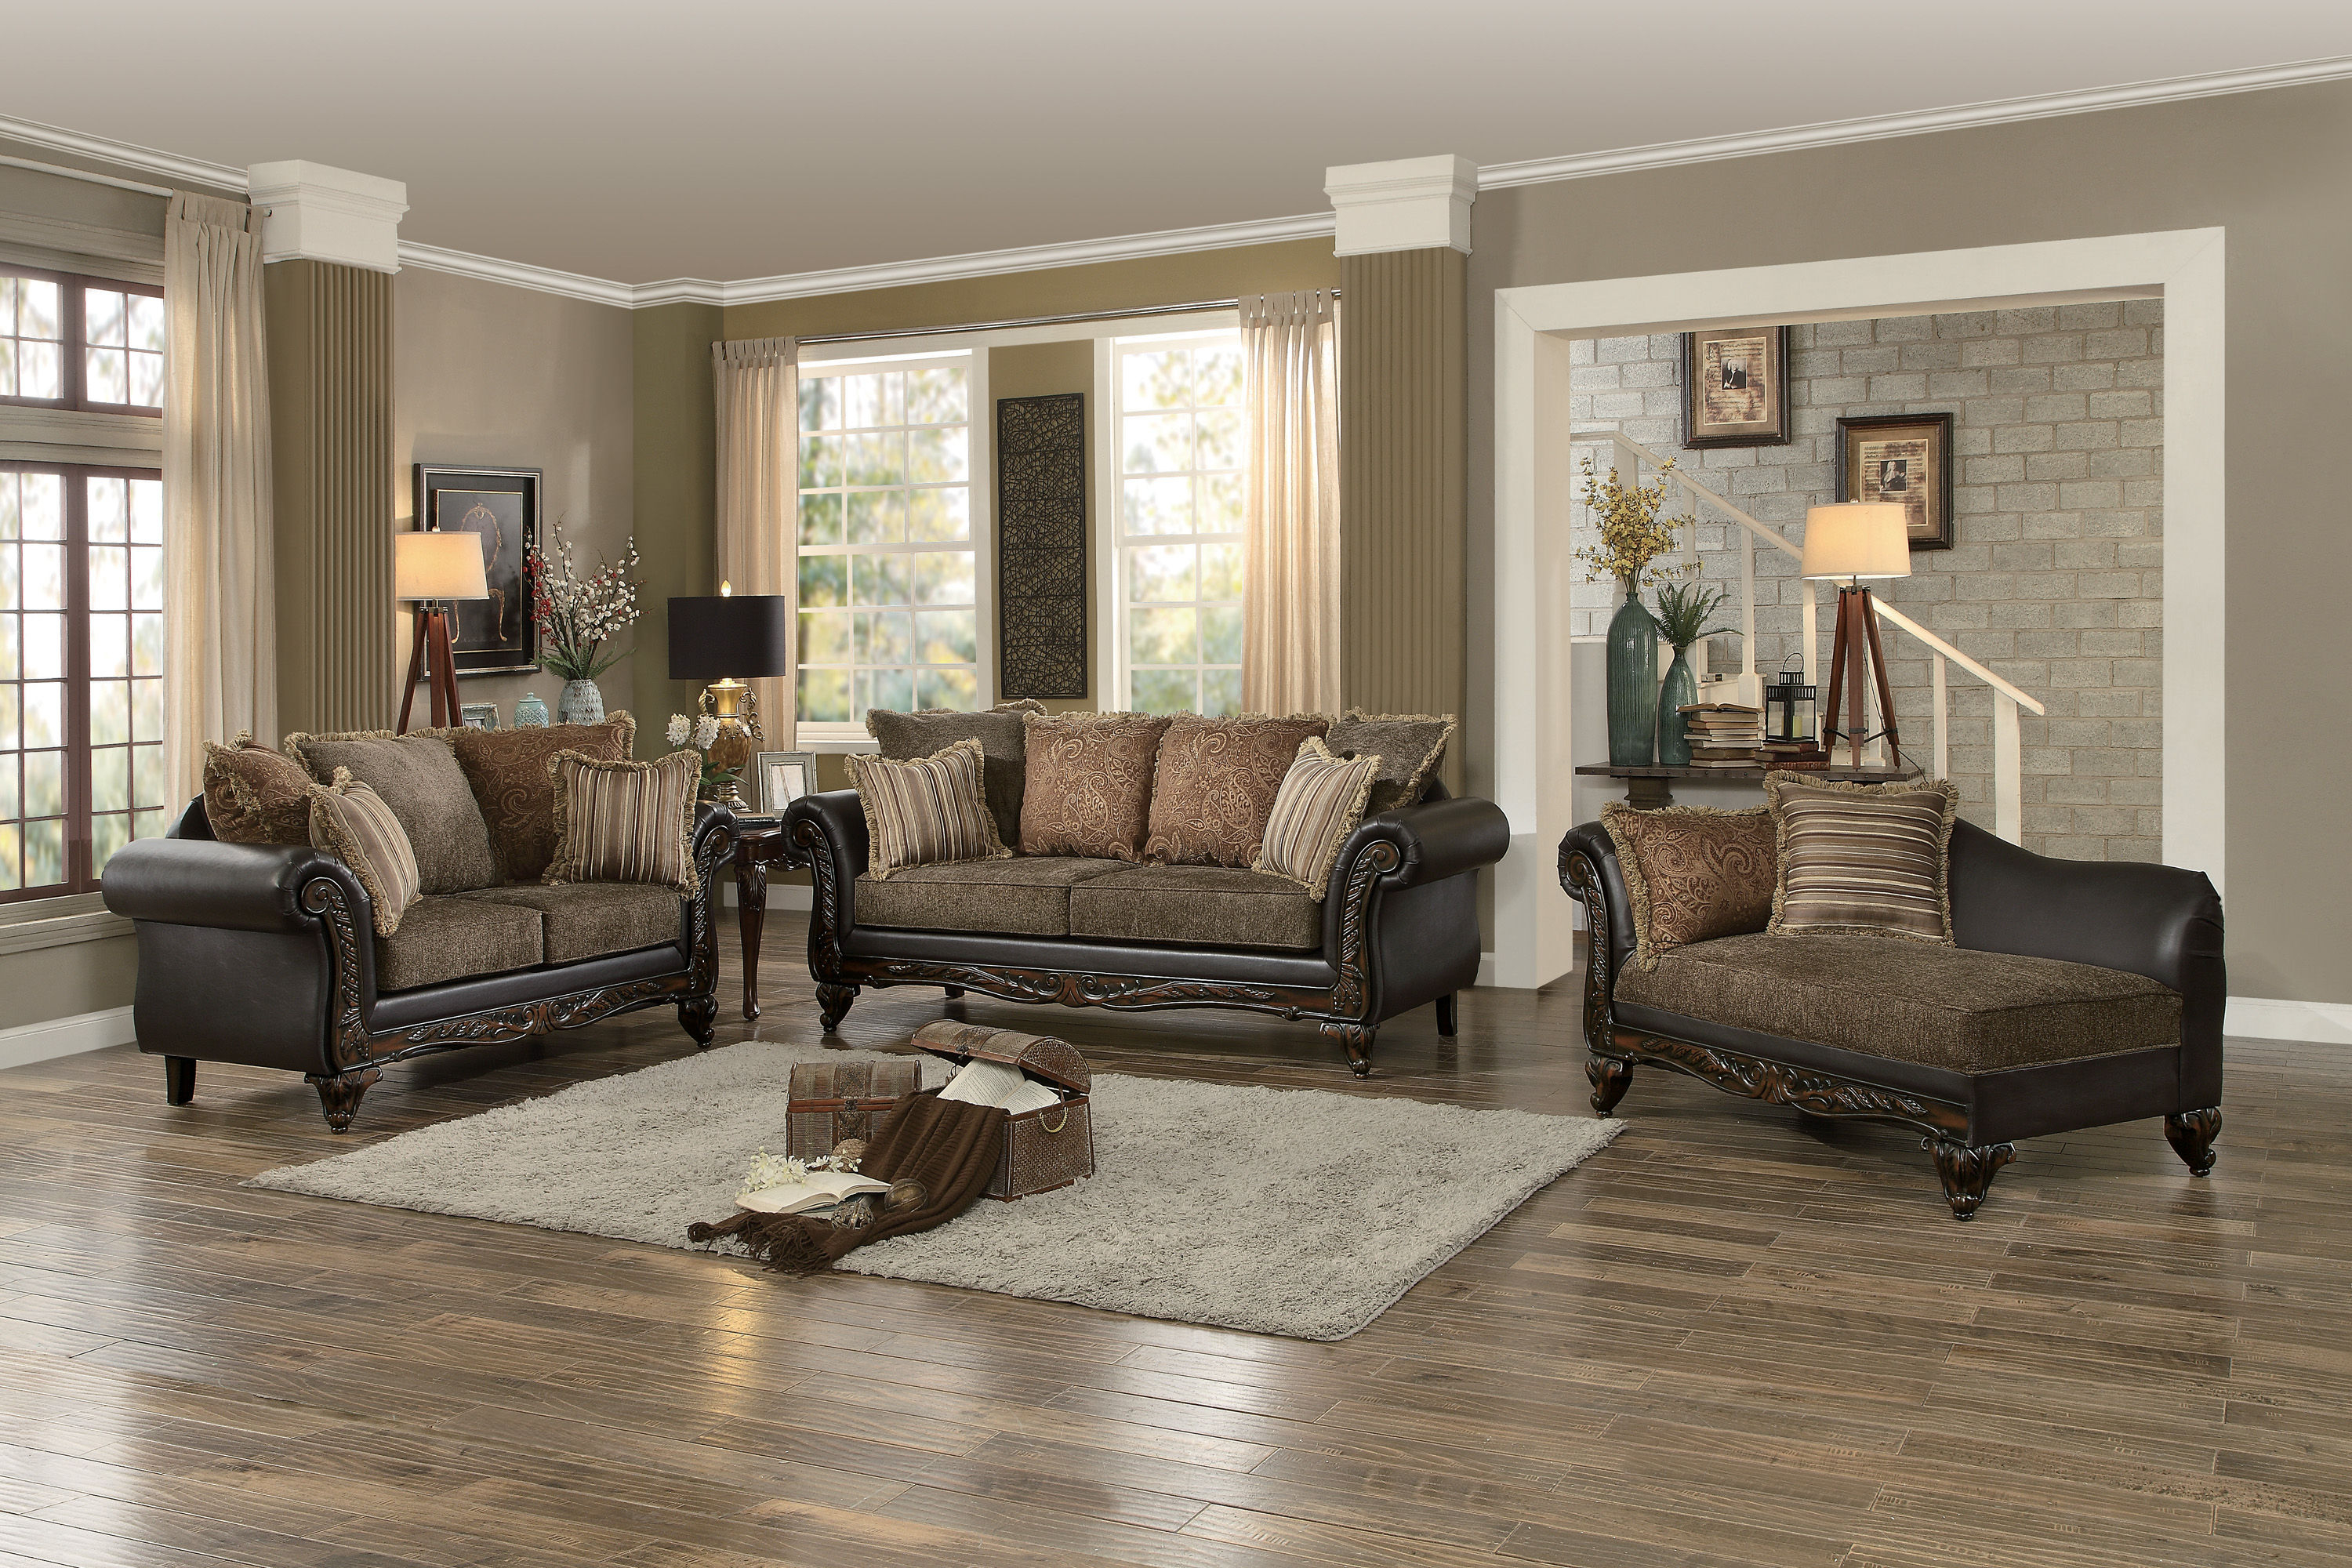 Home Elegance Thibodaux Brown 3pc Living Room Set within 15 Some of the Coolest Initiatives of How to Make Living Room Complete Sets